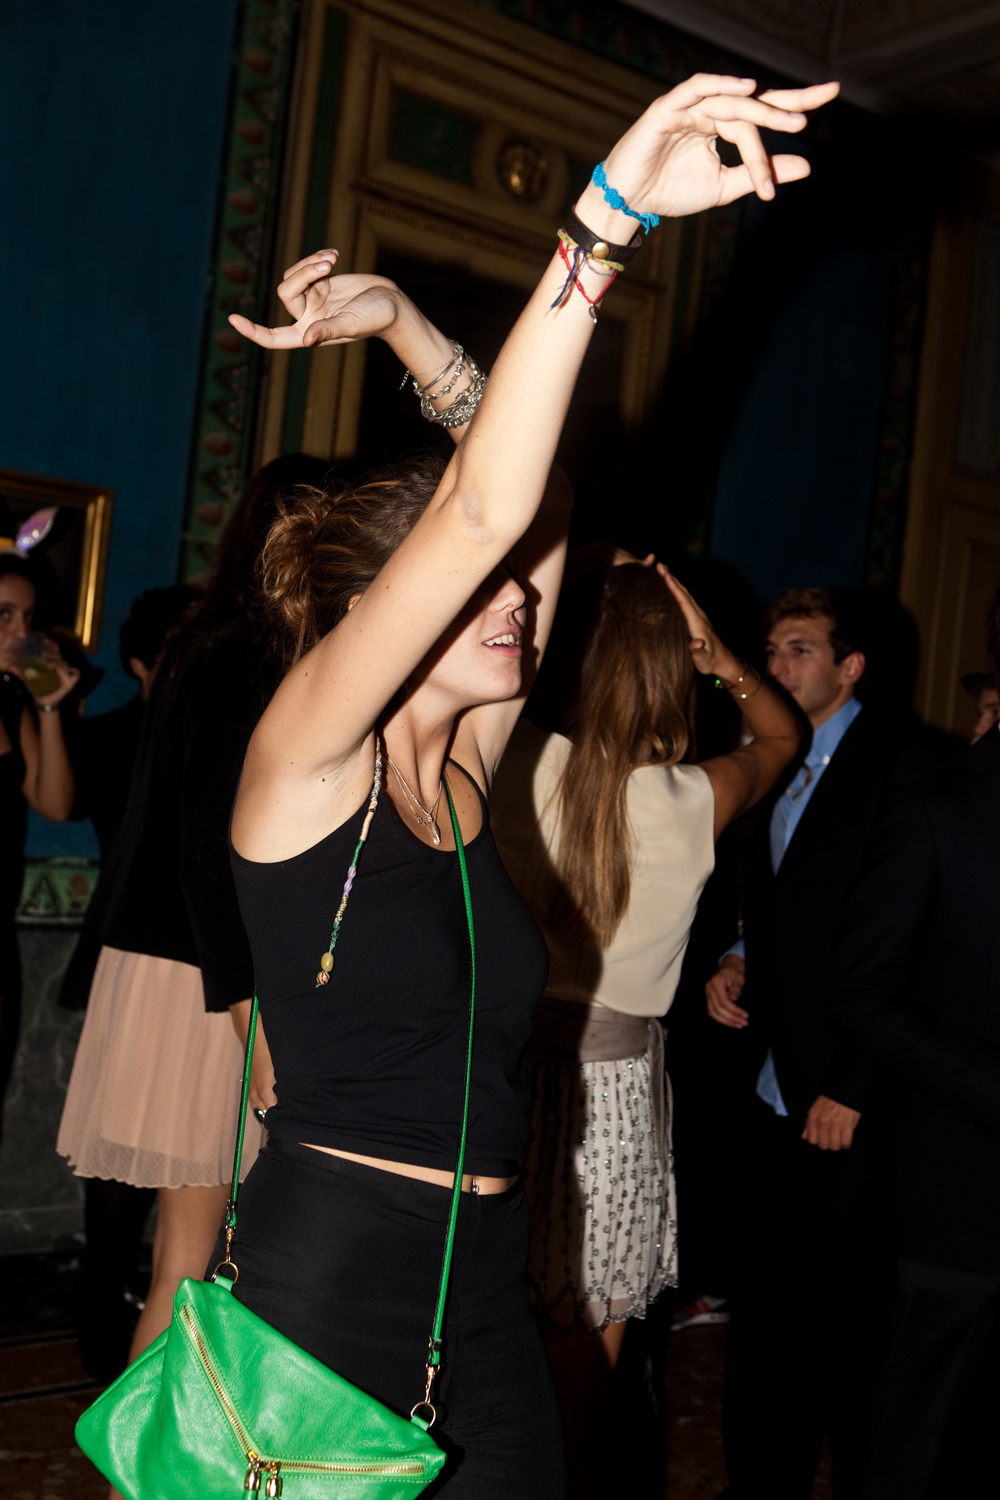 Parties03-Paola_Meloni_032.jpg